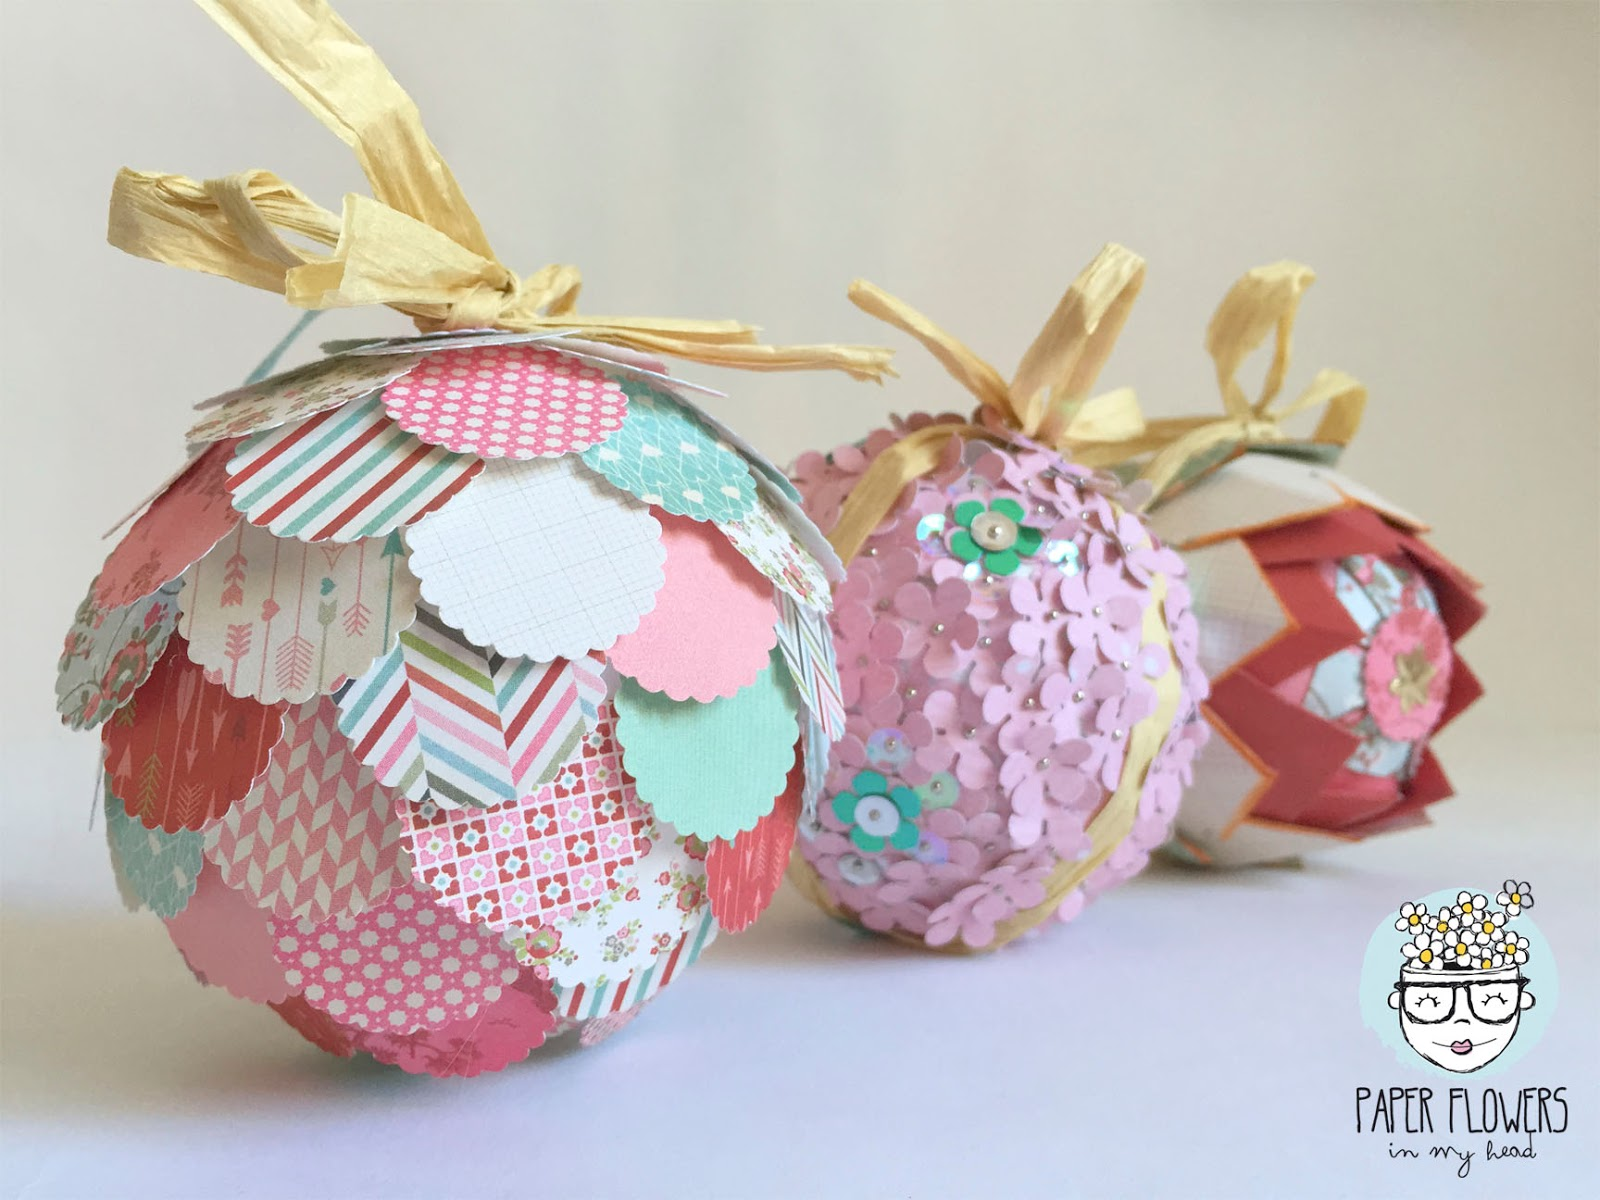 Decorar Bolas De Porexpan 3 Ideas Para Decorar Bolas De Navidad Con Papel De